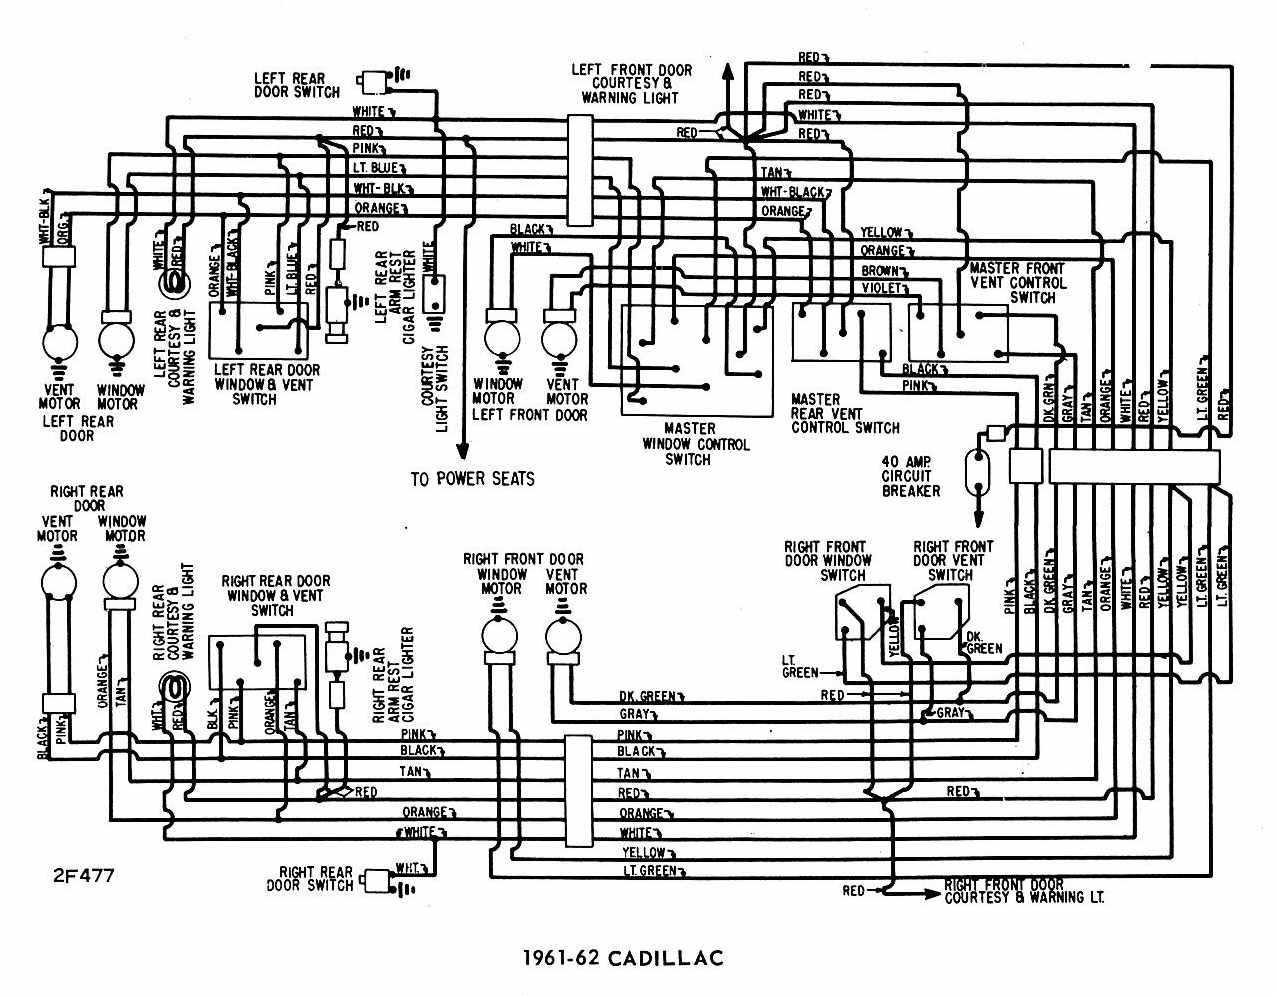 1964 Cadillac Wiring Diagram Manual E Books 1978 Toyota Hilux Engine 1961 Distributor Diagram1961 Trusted Online1962